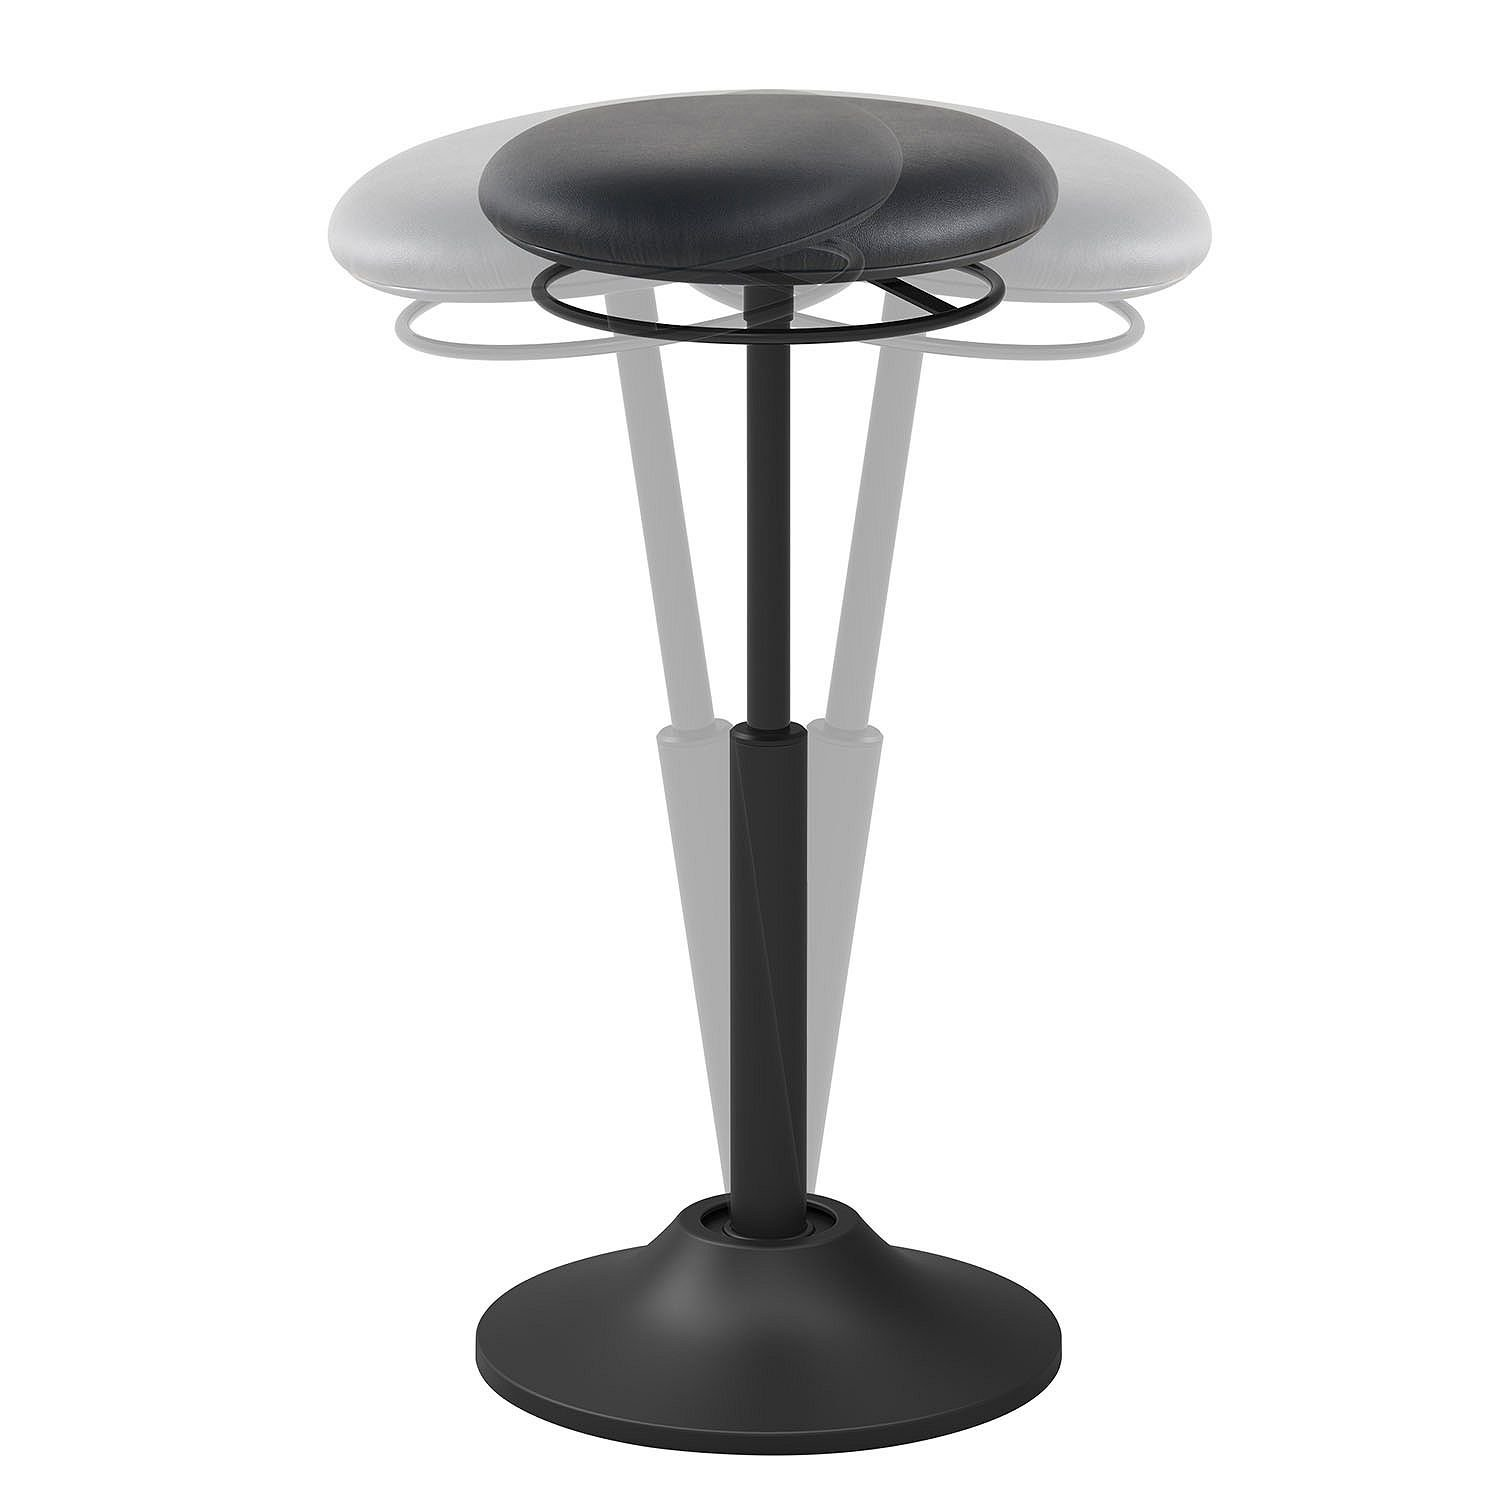 Motion Chair 360-degree Swivel and Tilt Healthy Sit-to-Stand Stool Chair (Black)